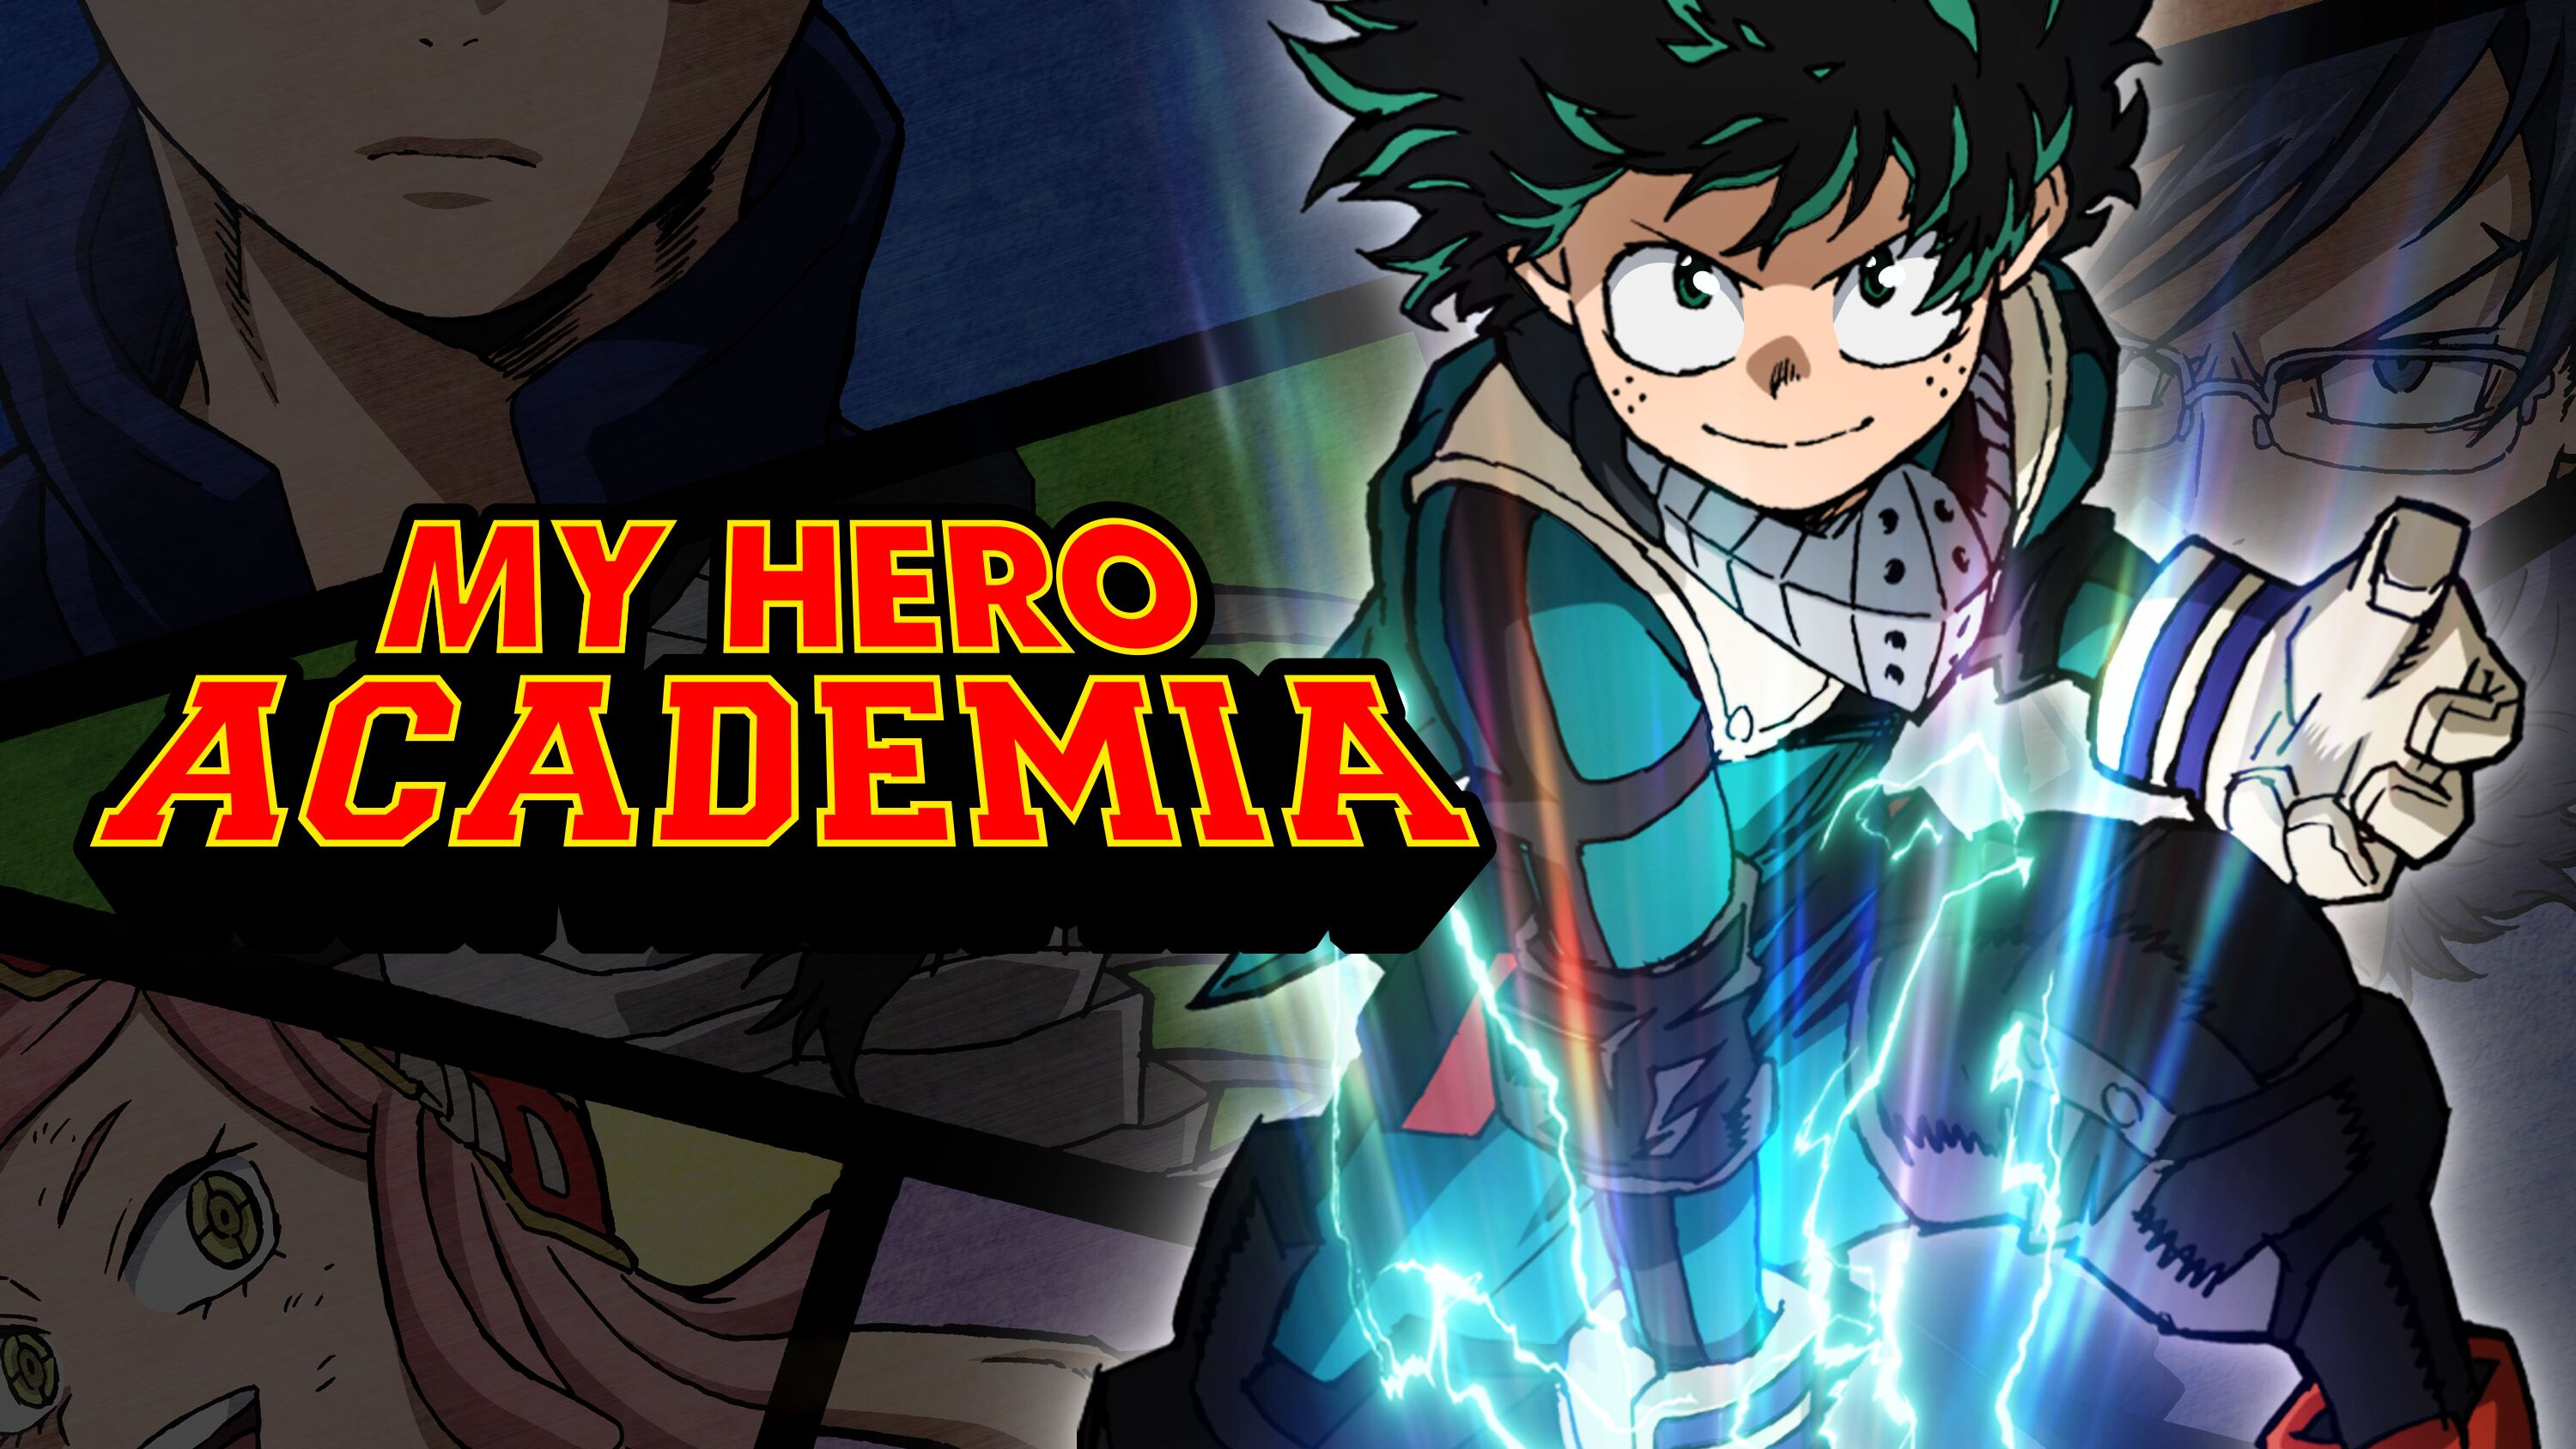 My Hero Academia: Winners and losers of Episode 76